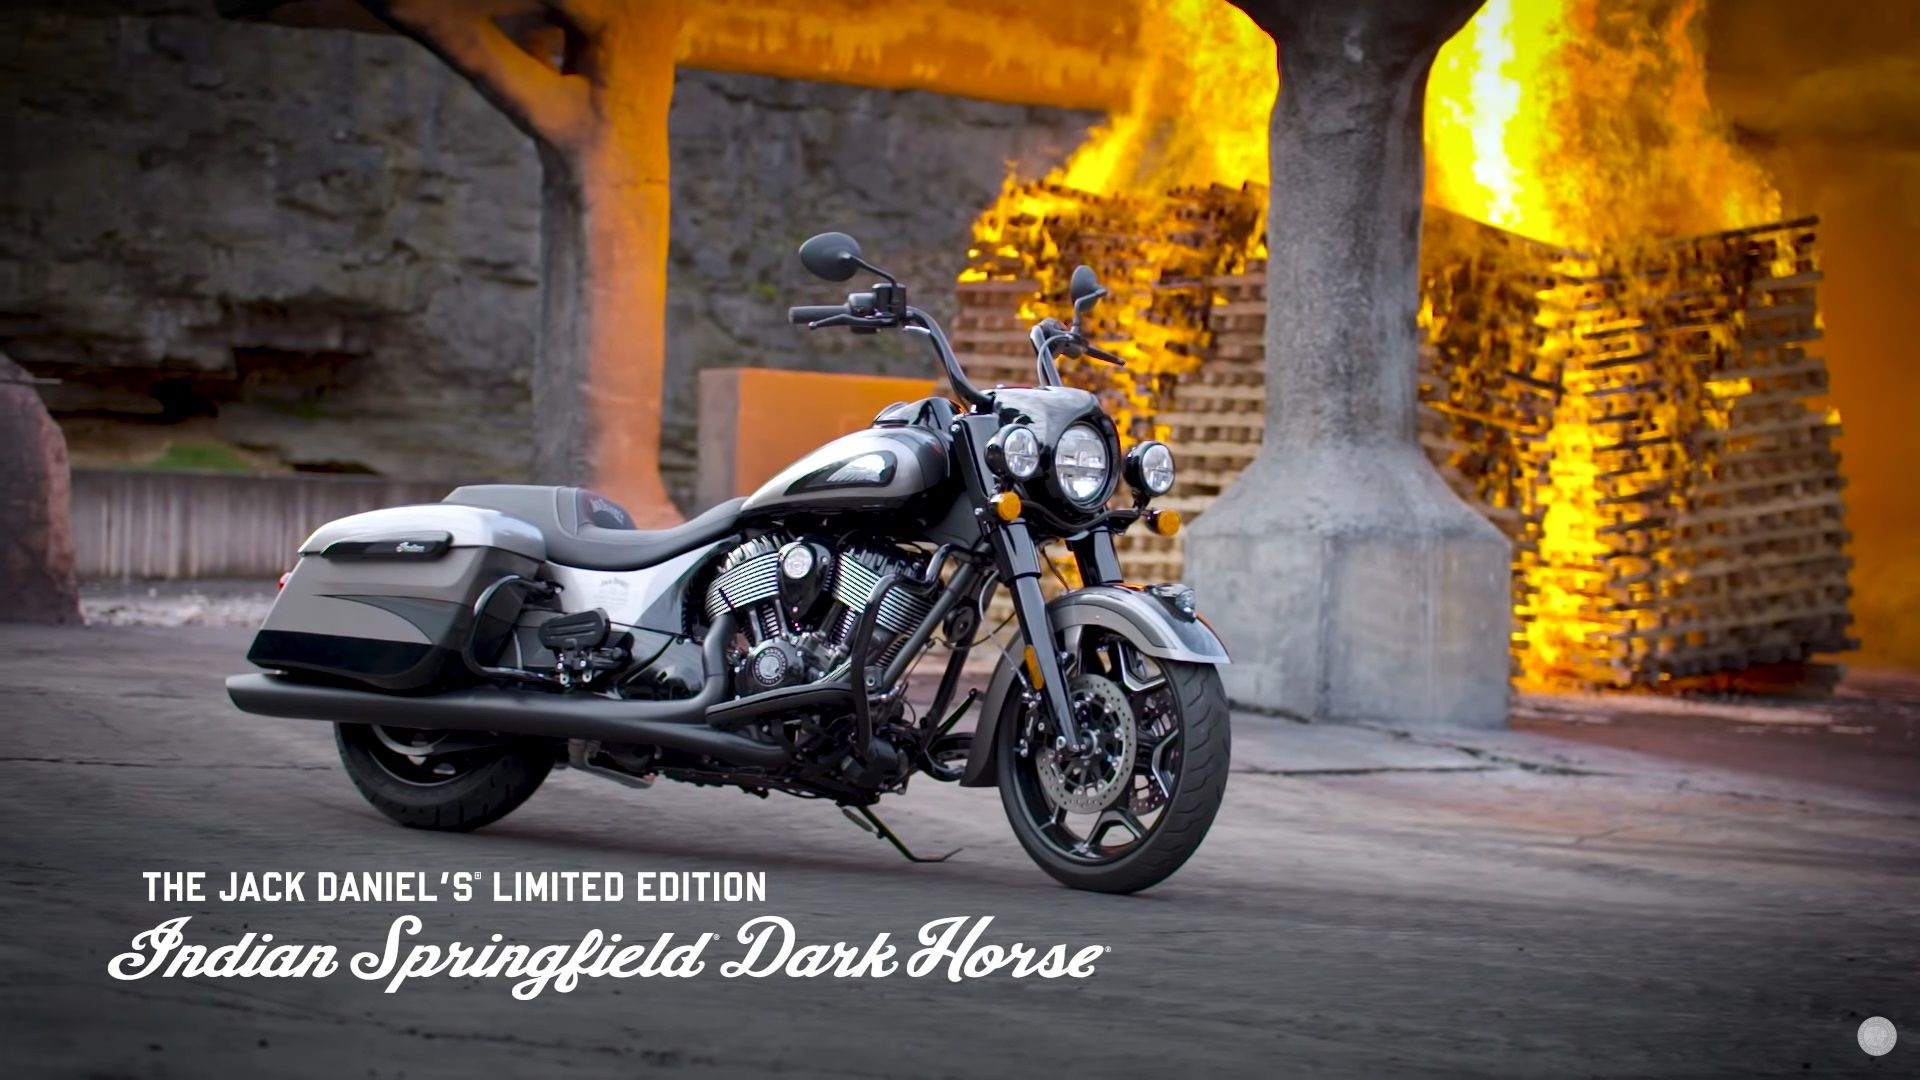 2020 Indian Motorcycle Jack Daniel S Limited Edition Indian Springfield Dark Horse Top Speed Indian Motorcycle Motorcycle Motorcycle Style [ 1080 x 1920 Pixel ]